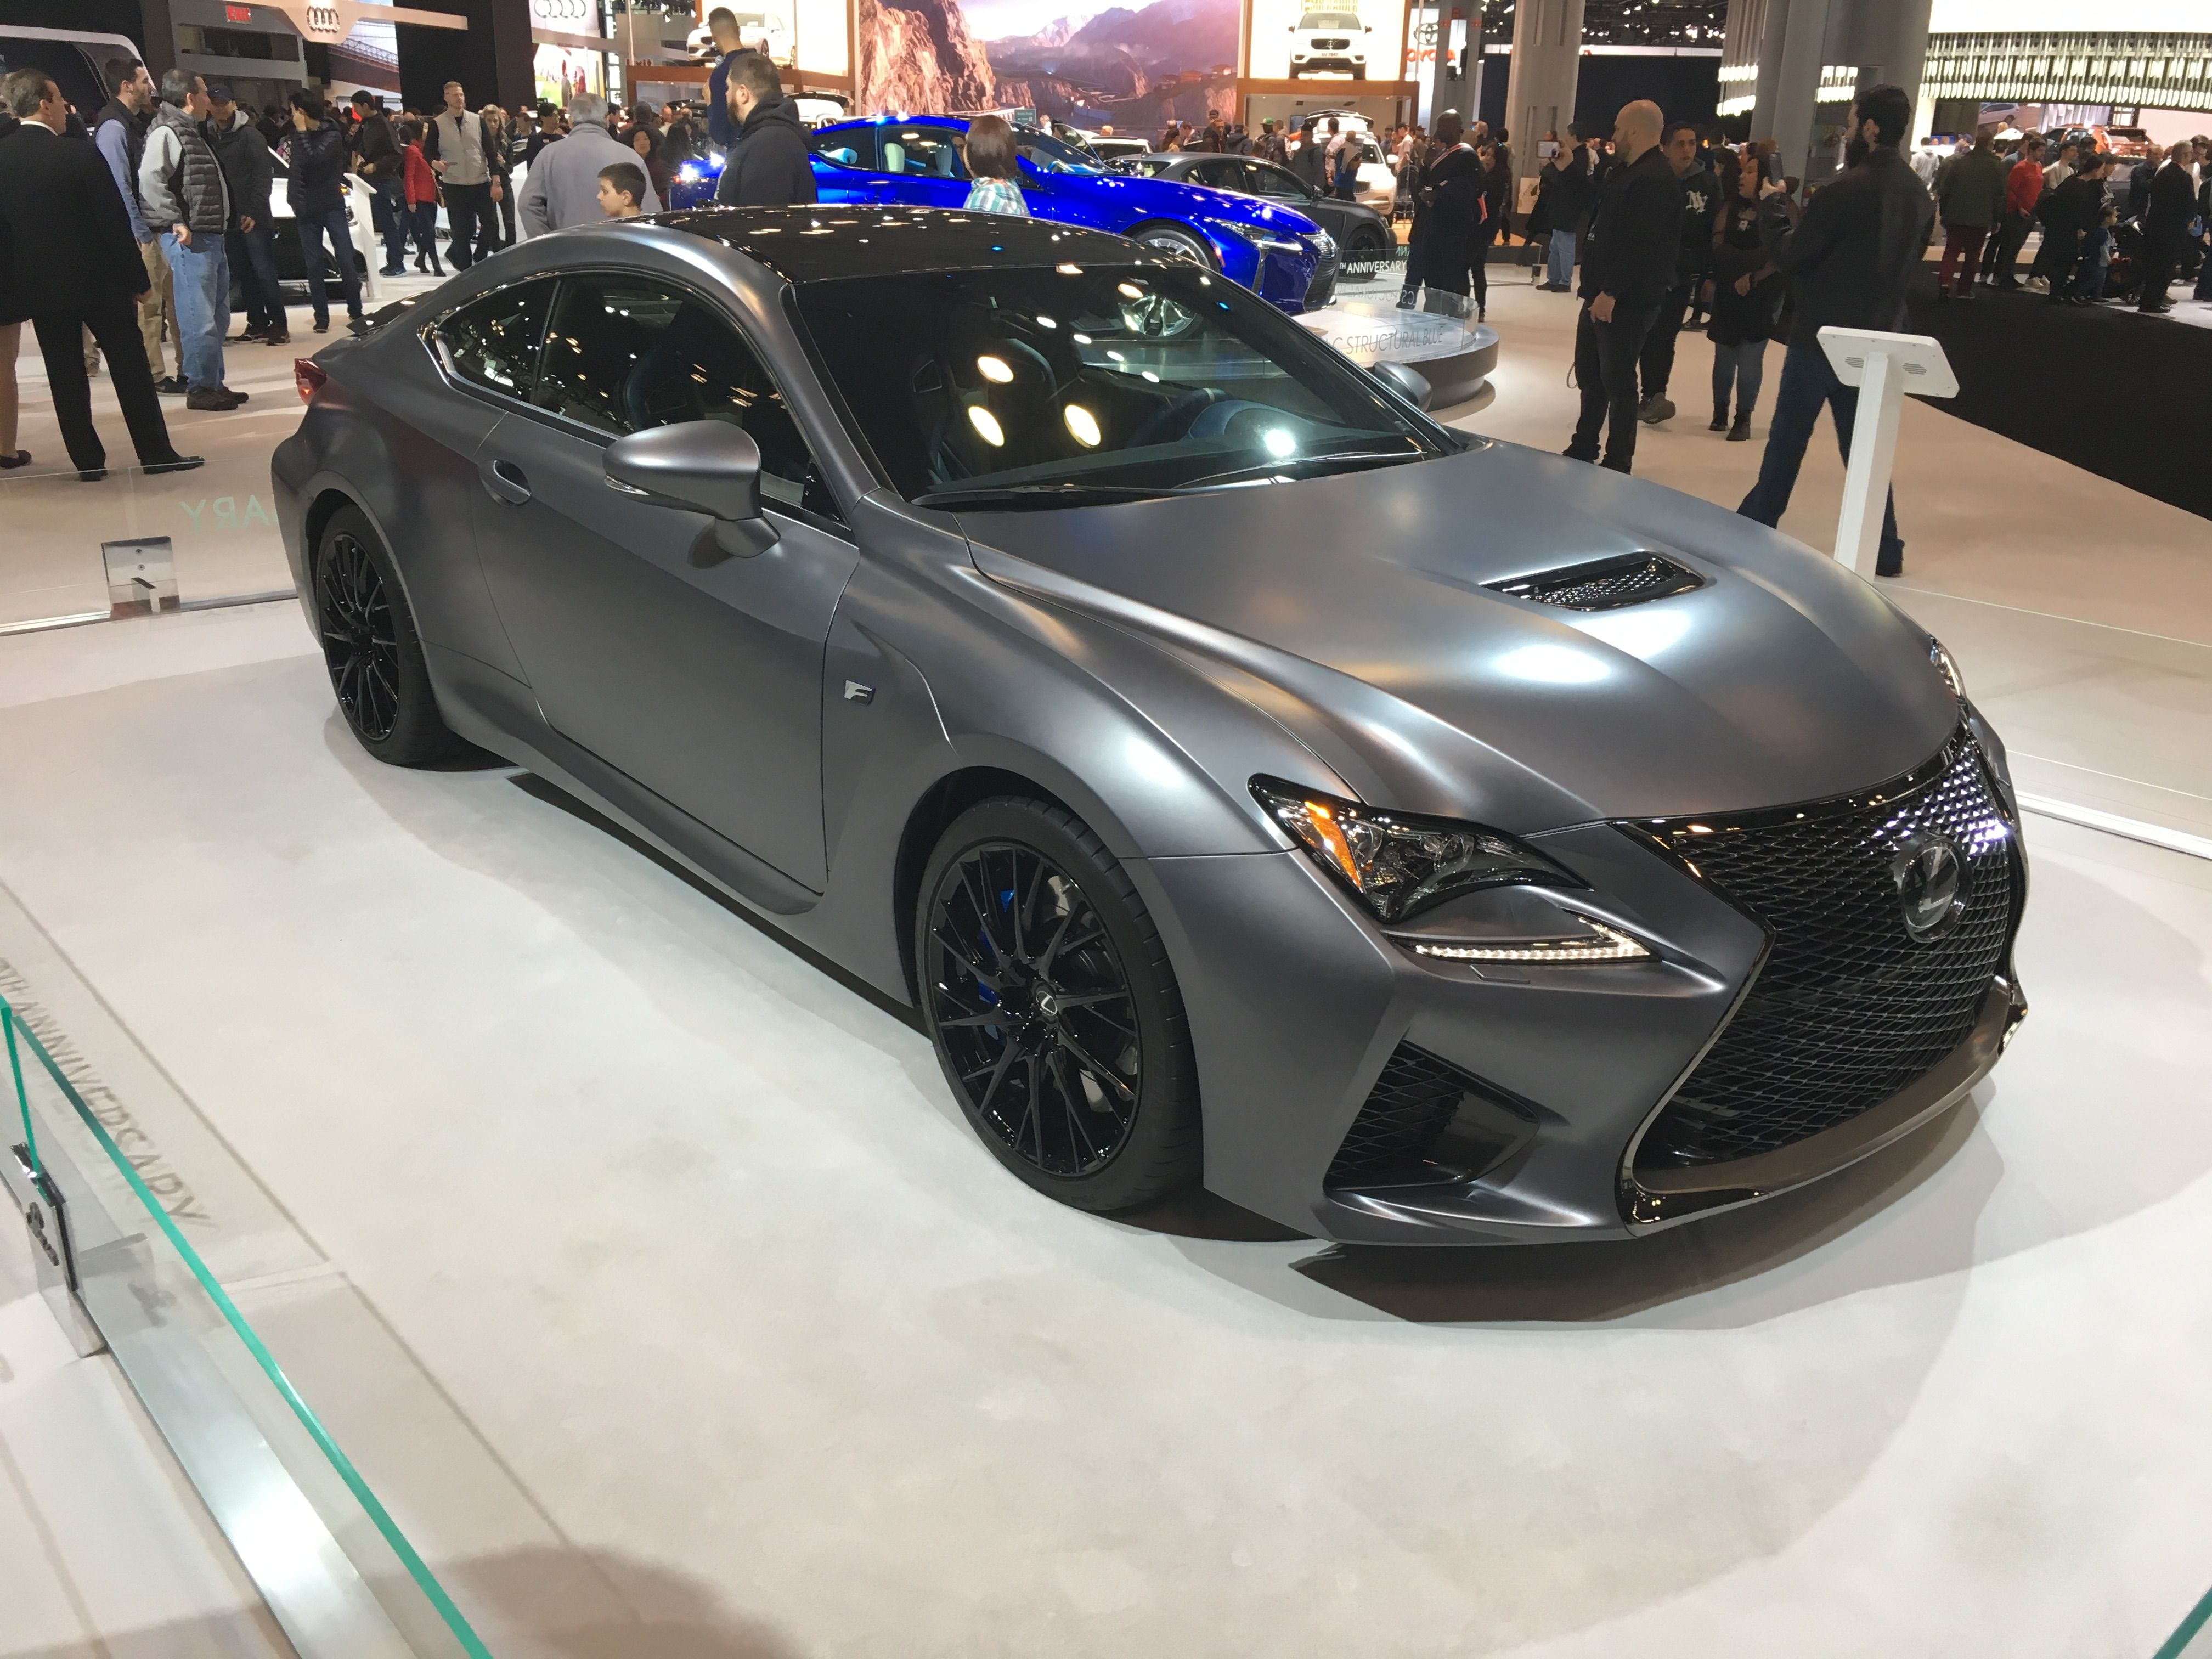 f3972b3cd5526a016d12c7148fd31f7d Take A Look About Lexus Link with Exciting Gallery Cars Review